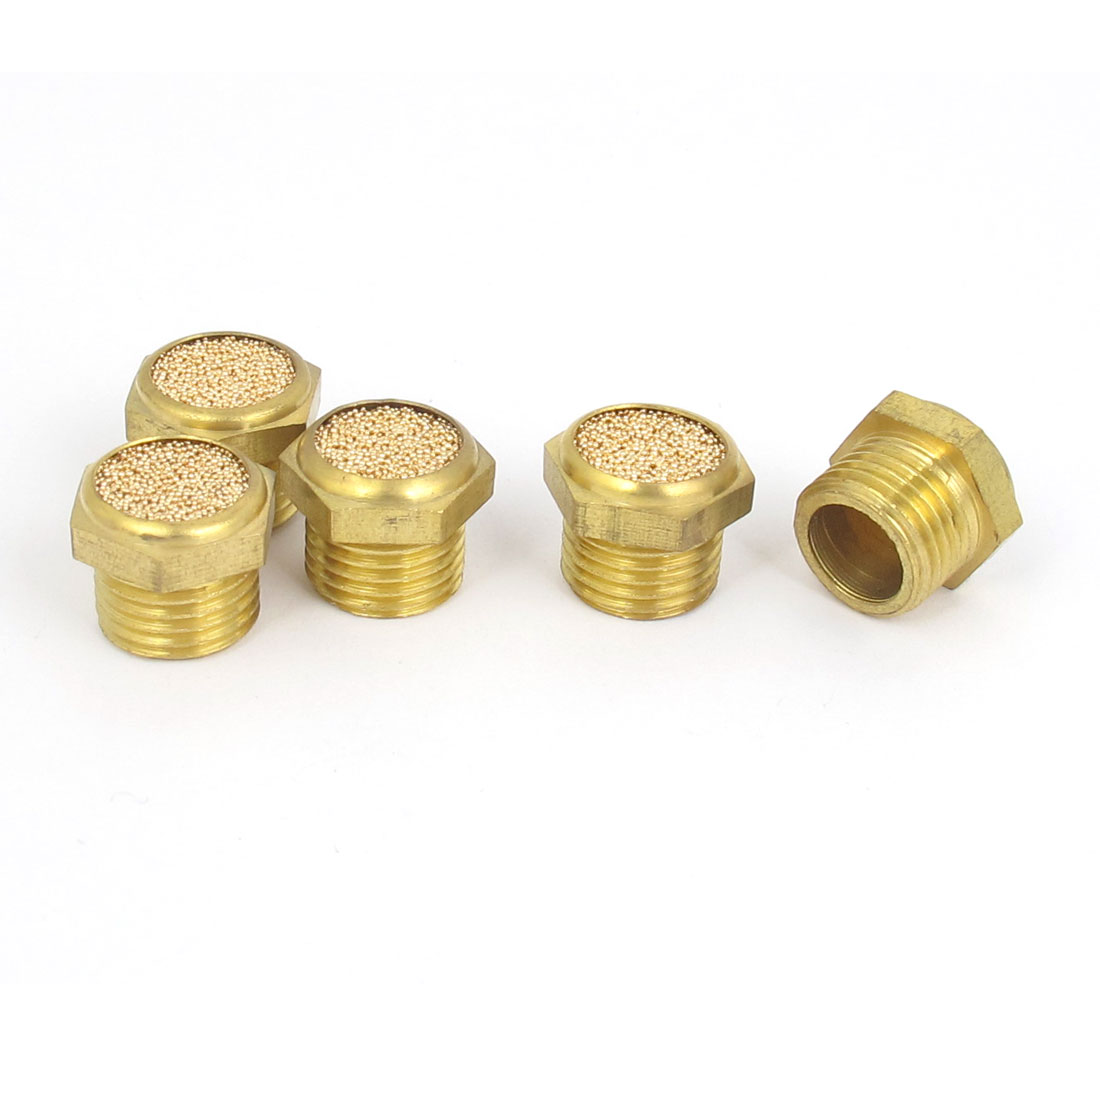 1/4BSP Thread Brass Pneumatic Air Exhaust Noise Reducing Silencer Muffler 5pcs